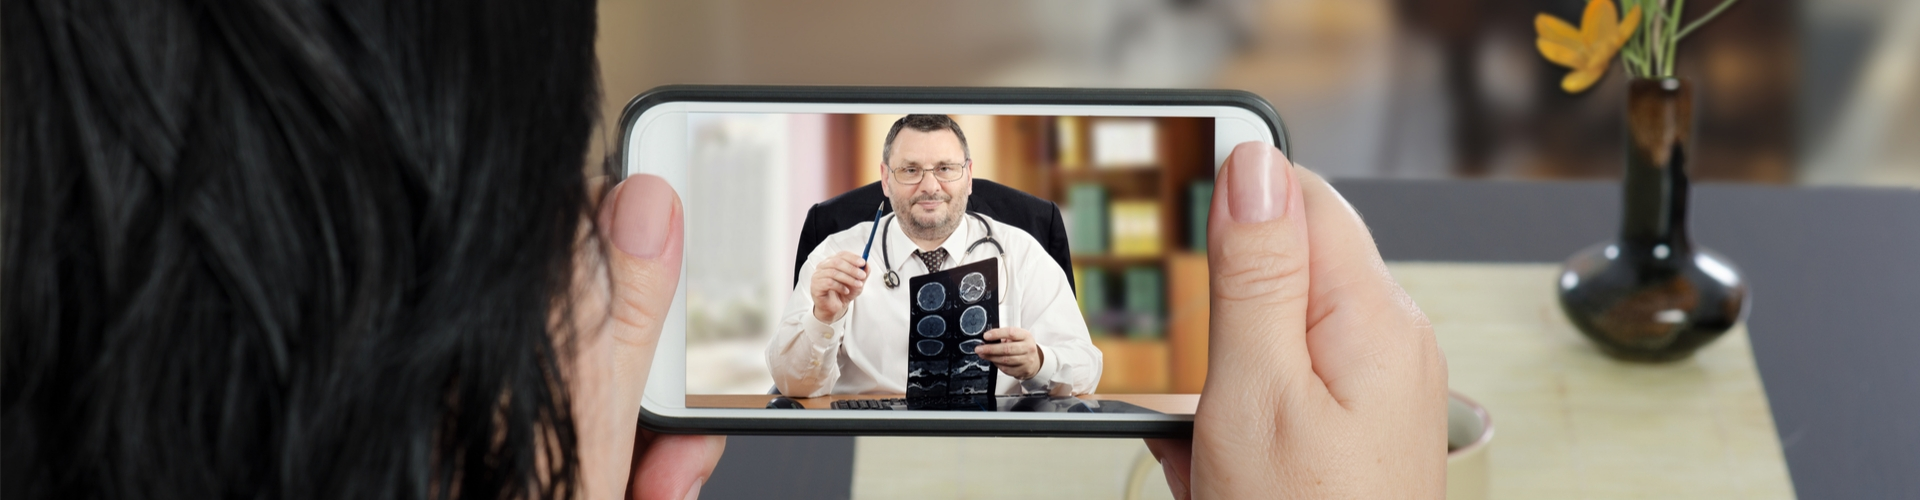 SEO for Telemedicine: A Guide to SEO for Doctors